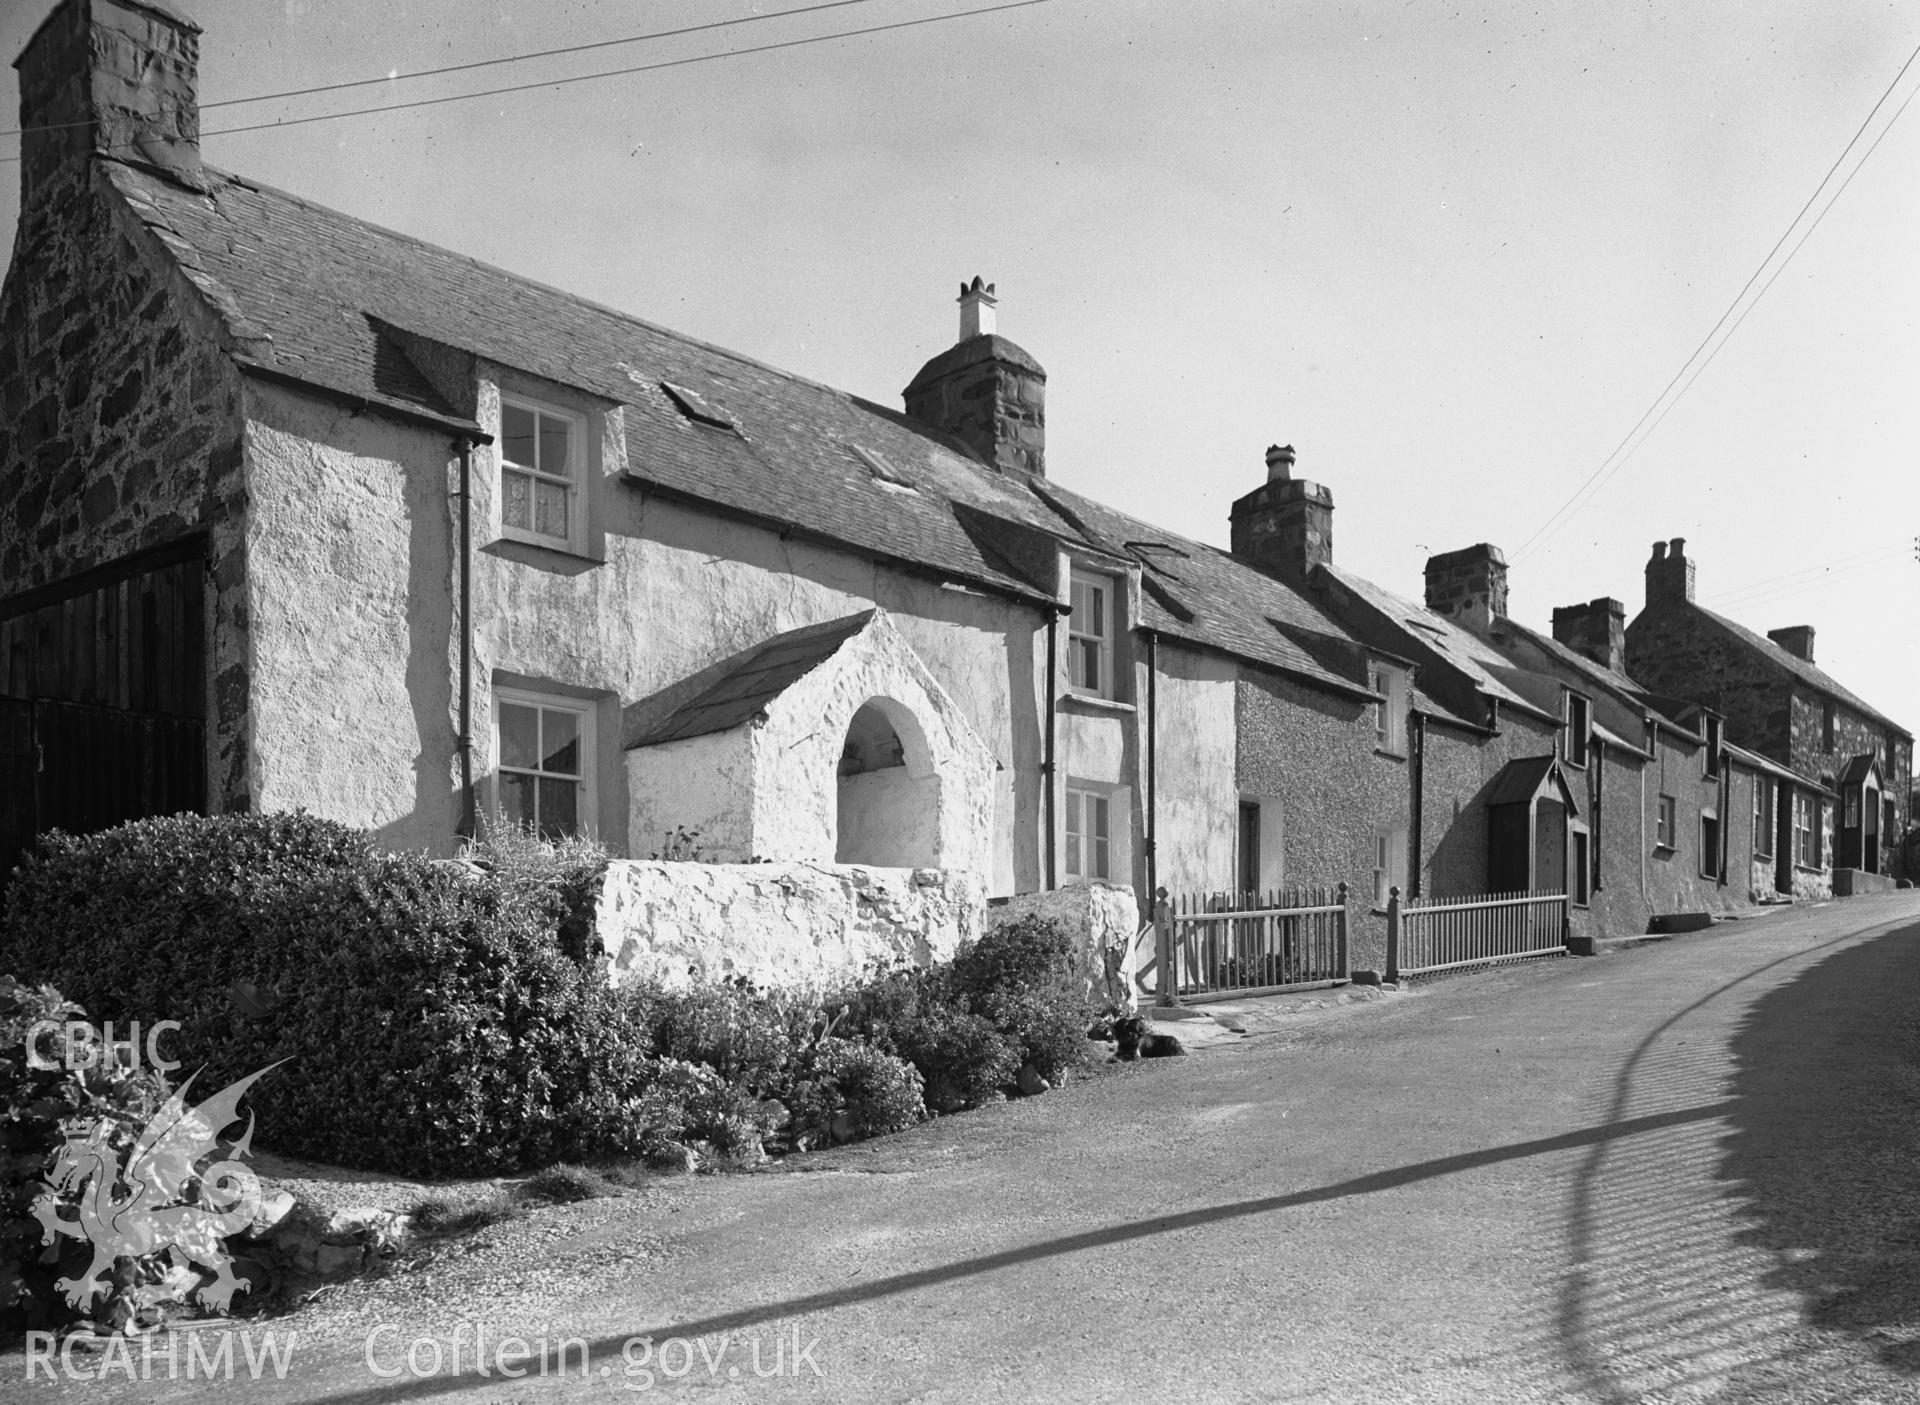 View of cottages on Rhiw Road.